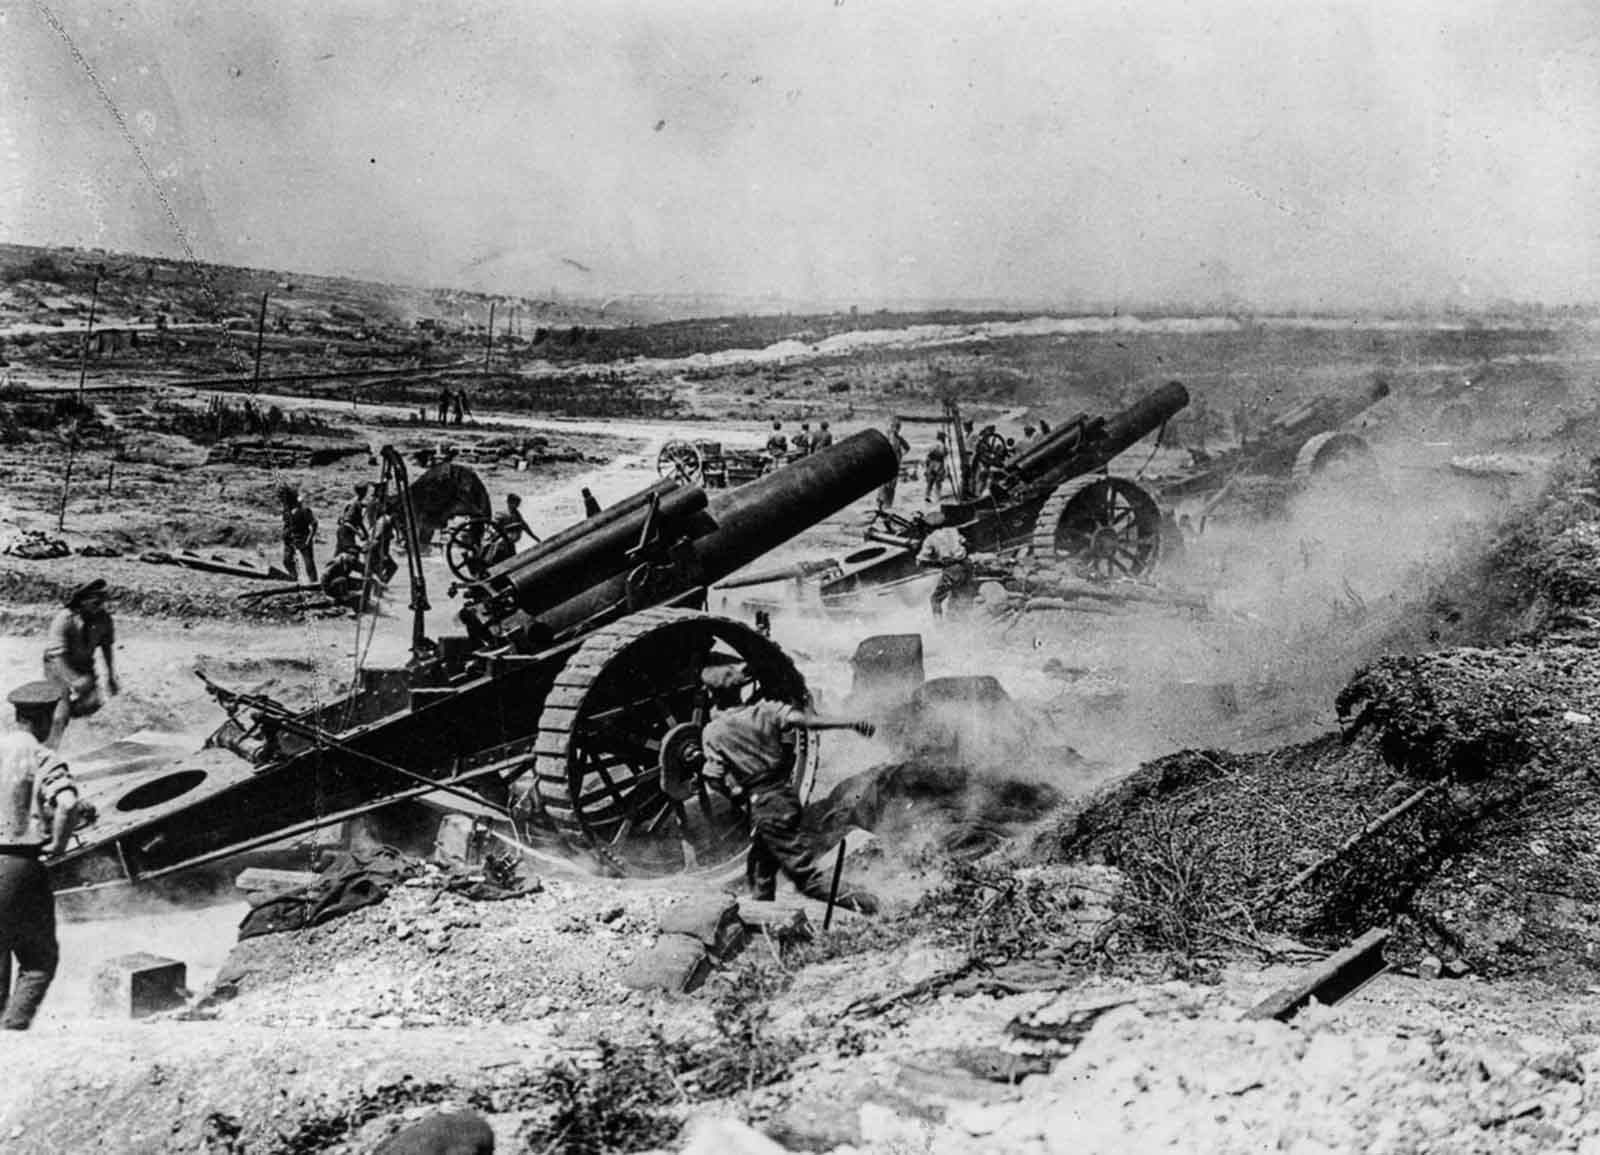 The 39th Siege Battery artillery in action in the Fricourt-Mametz Valley. August, 1916.